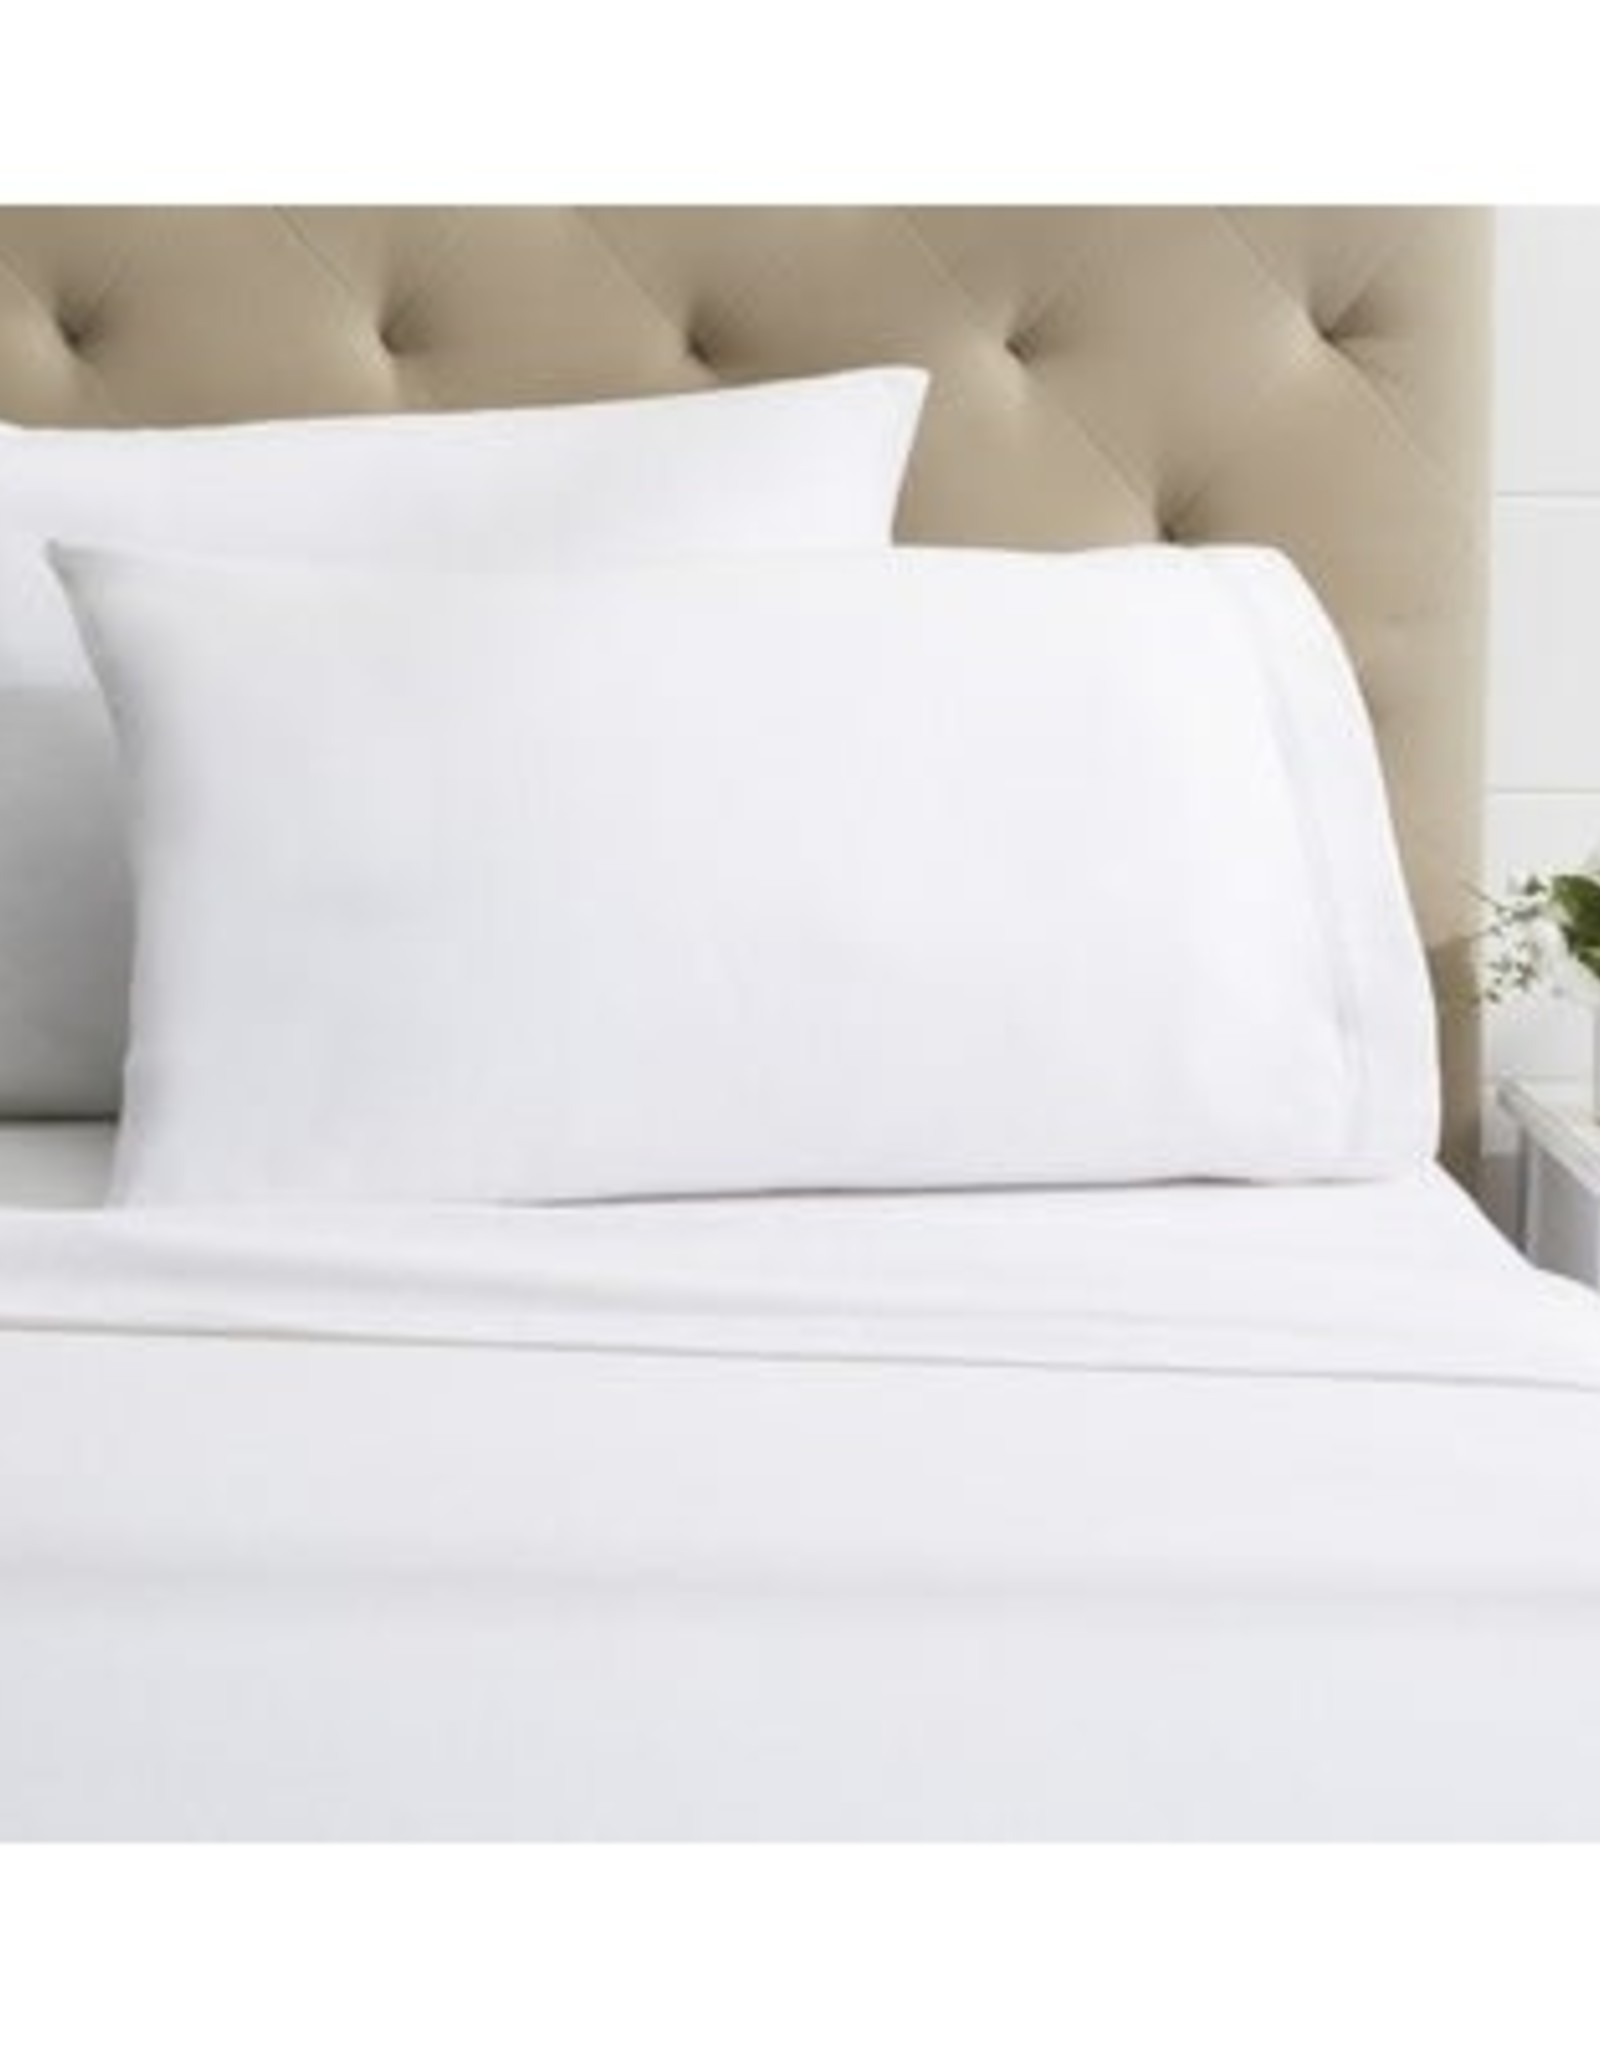 Intermark Sheets Dormisette Flannel Queen White Fitted